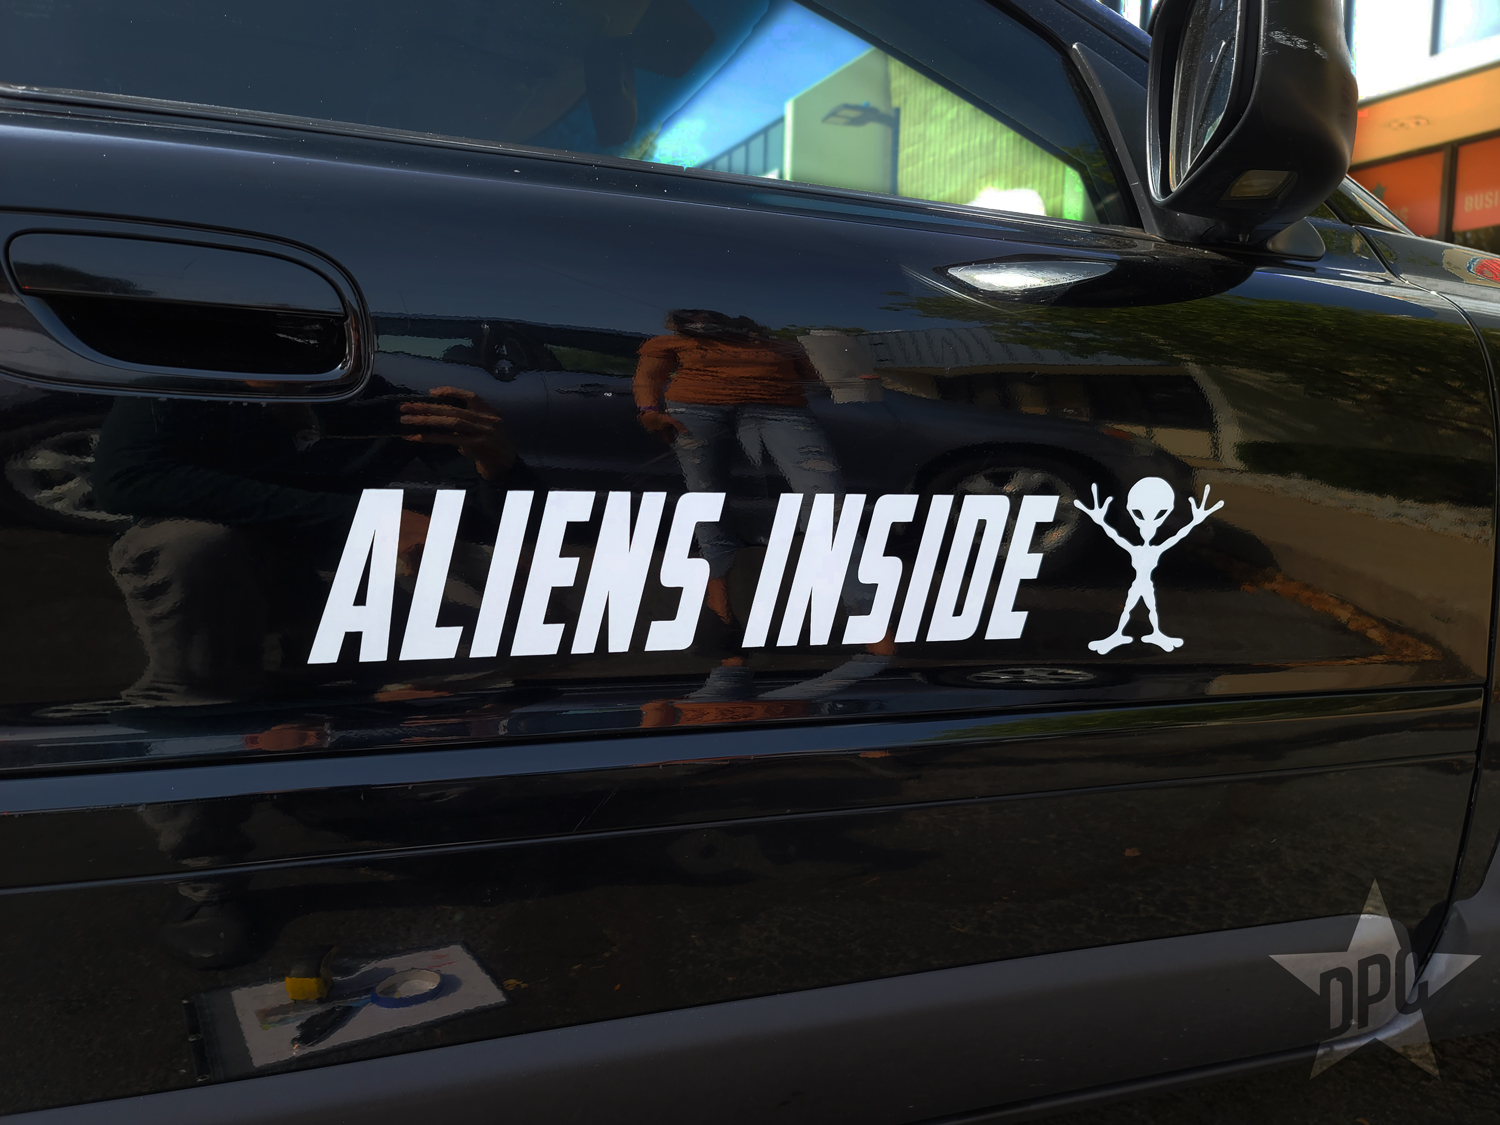 """Aliens inside"" car door graphics by Denver Print Company"